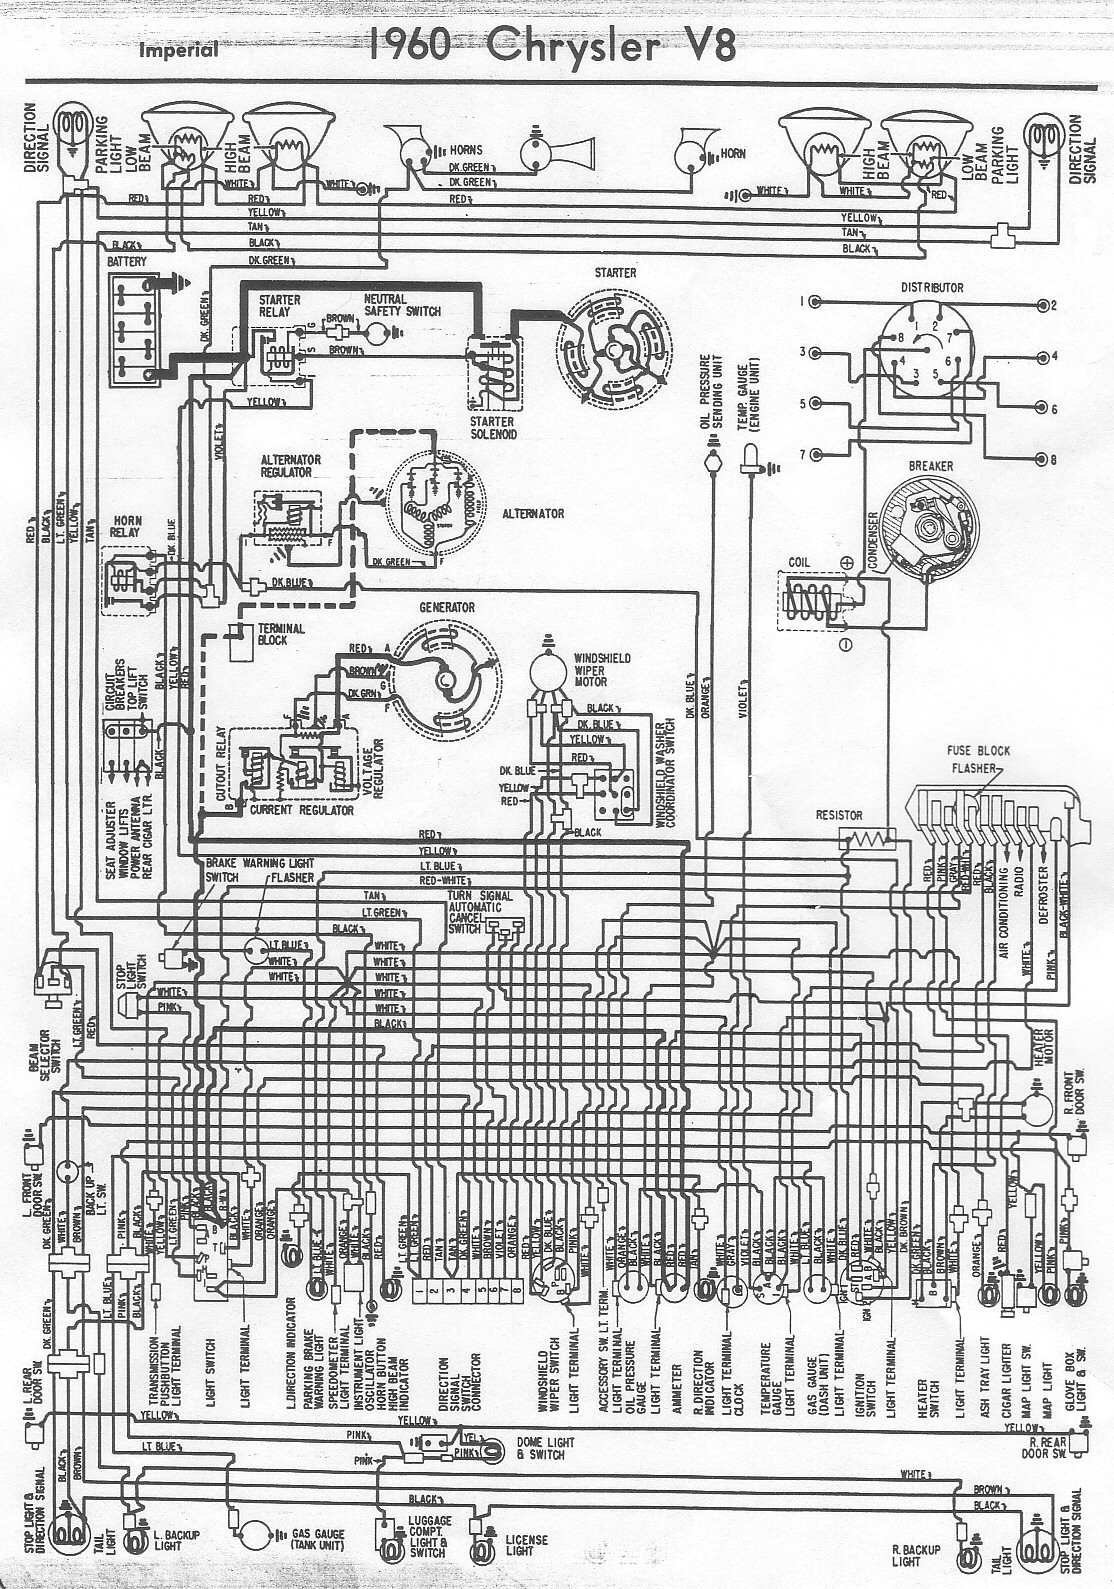 60ImperialV8 imperial wiring diagrams wiring schematics for cars \u2022 free wiring imperial convection oven wiring diagram at eliteediting.co